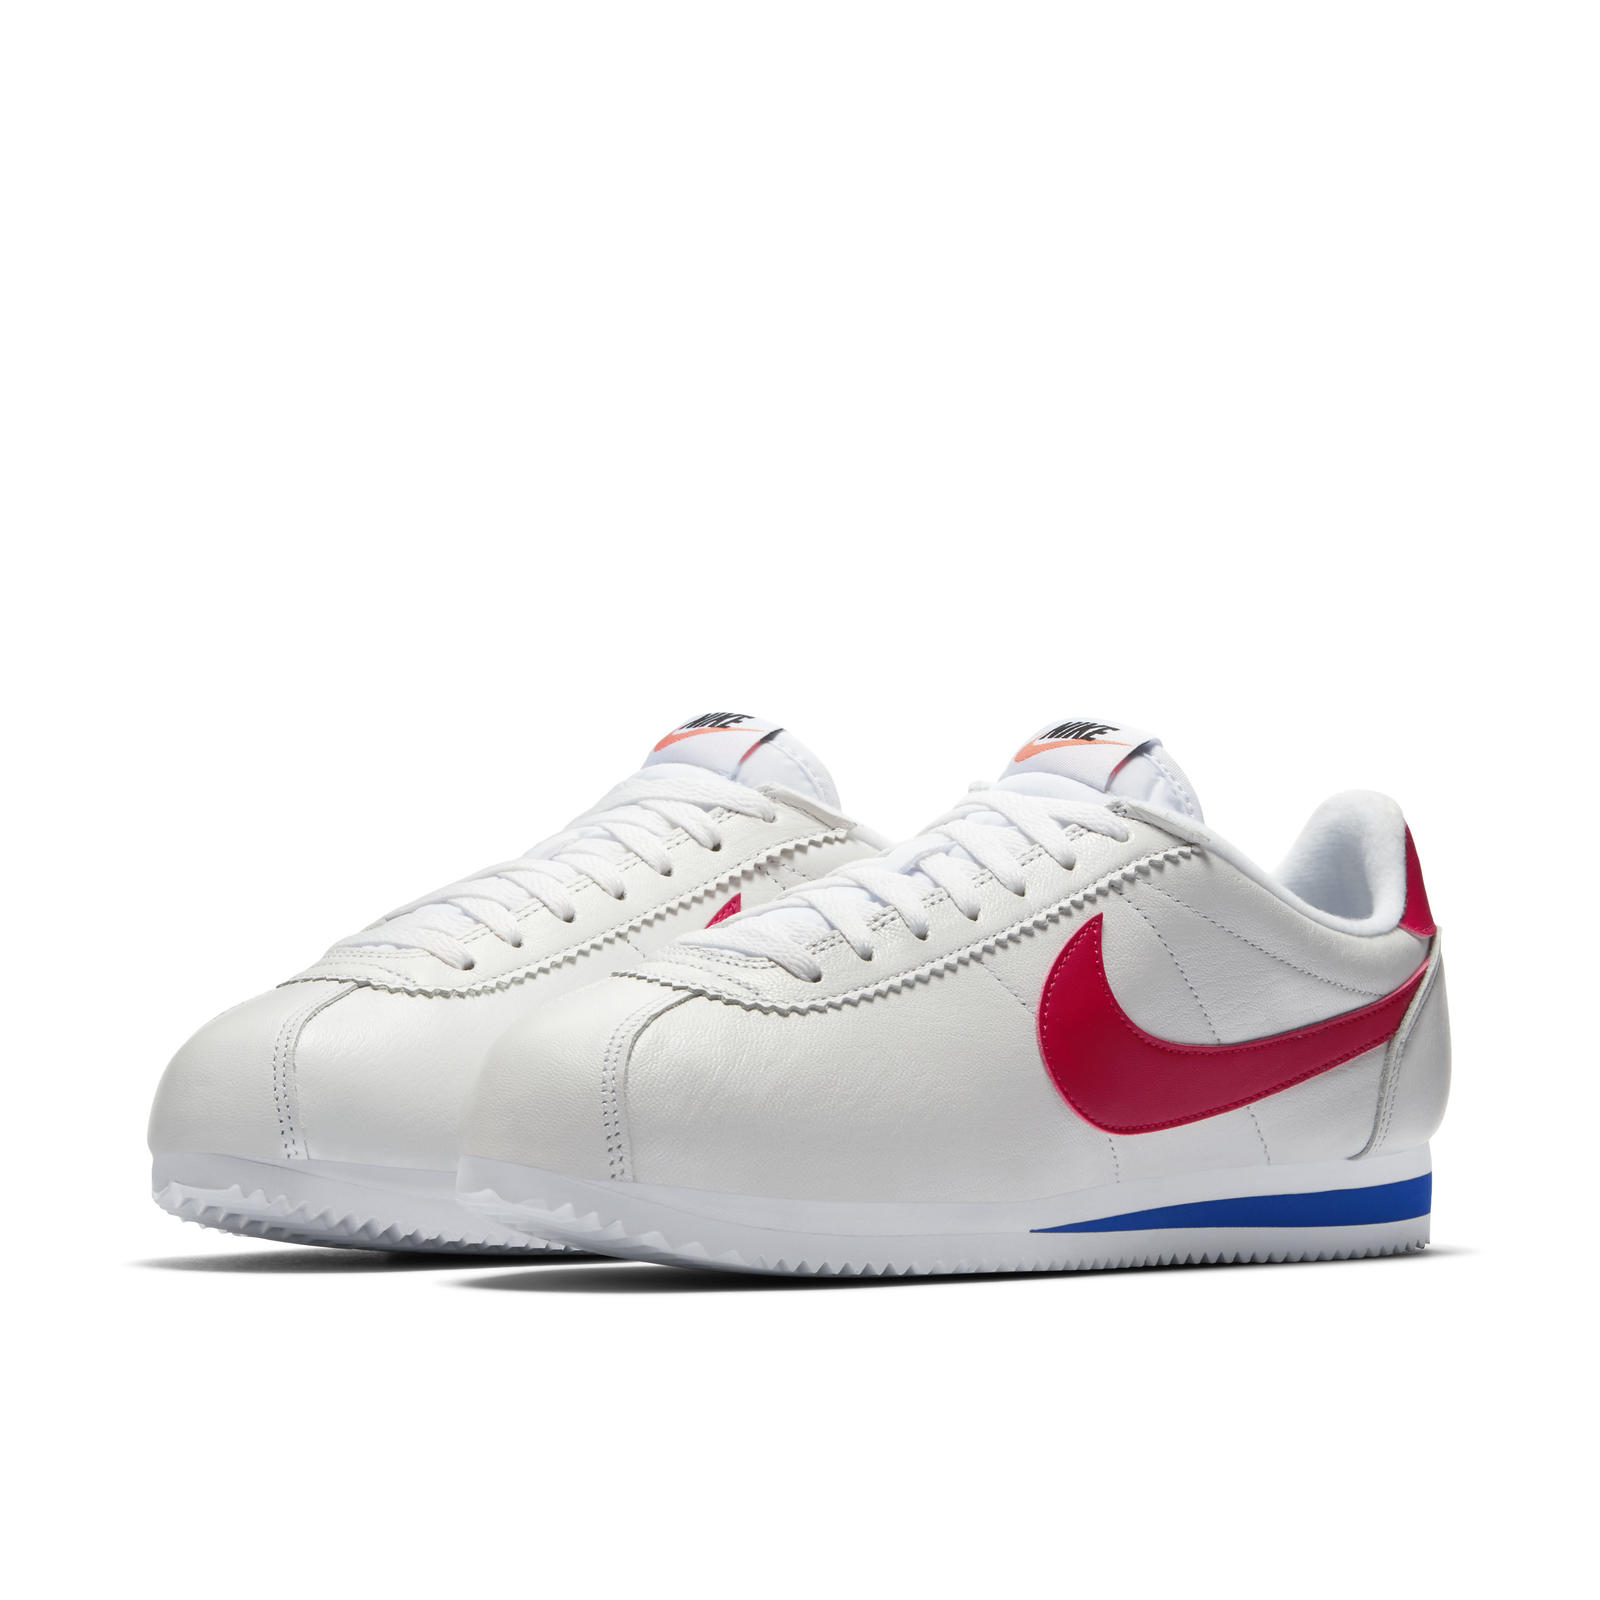 Celebrating 45 Years of Nike Cortez in Sport, Style and